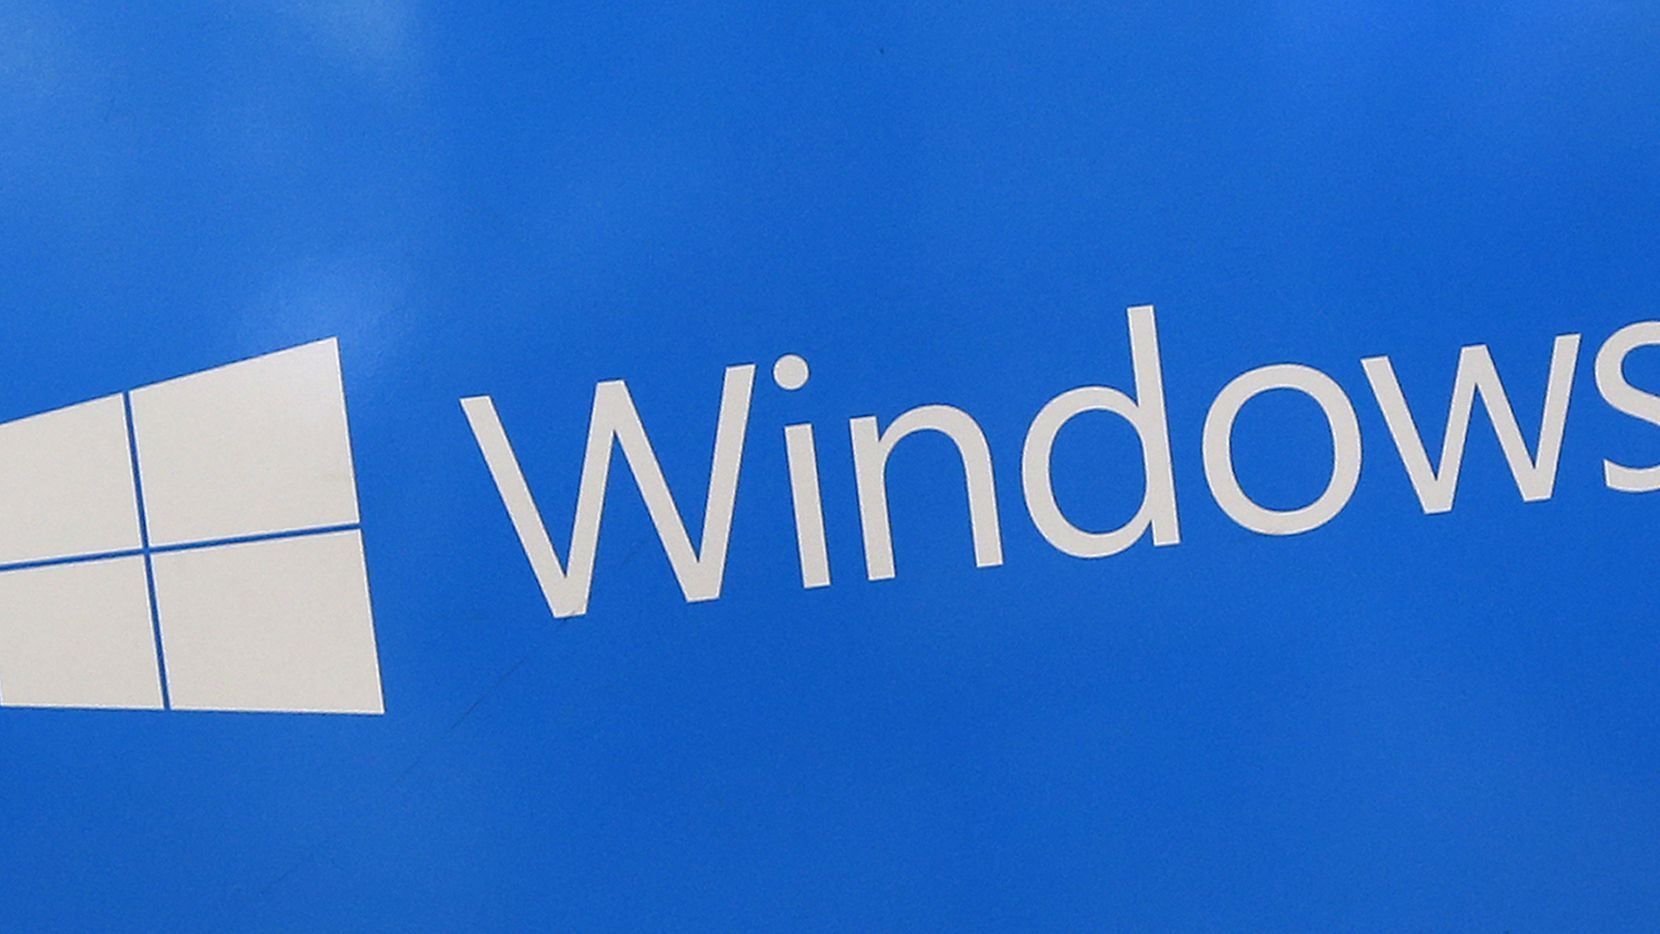 This 2017 file photo shows a Microsoft Widows sign on display at a store in Hialeah, Fla. (AP Photo/Alan Diaz)